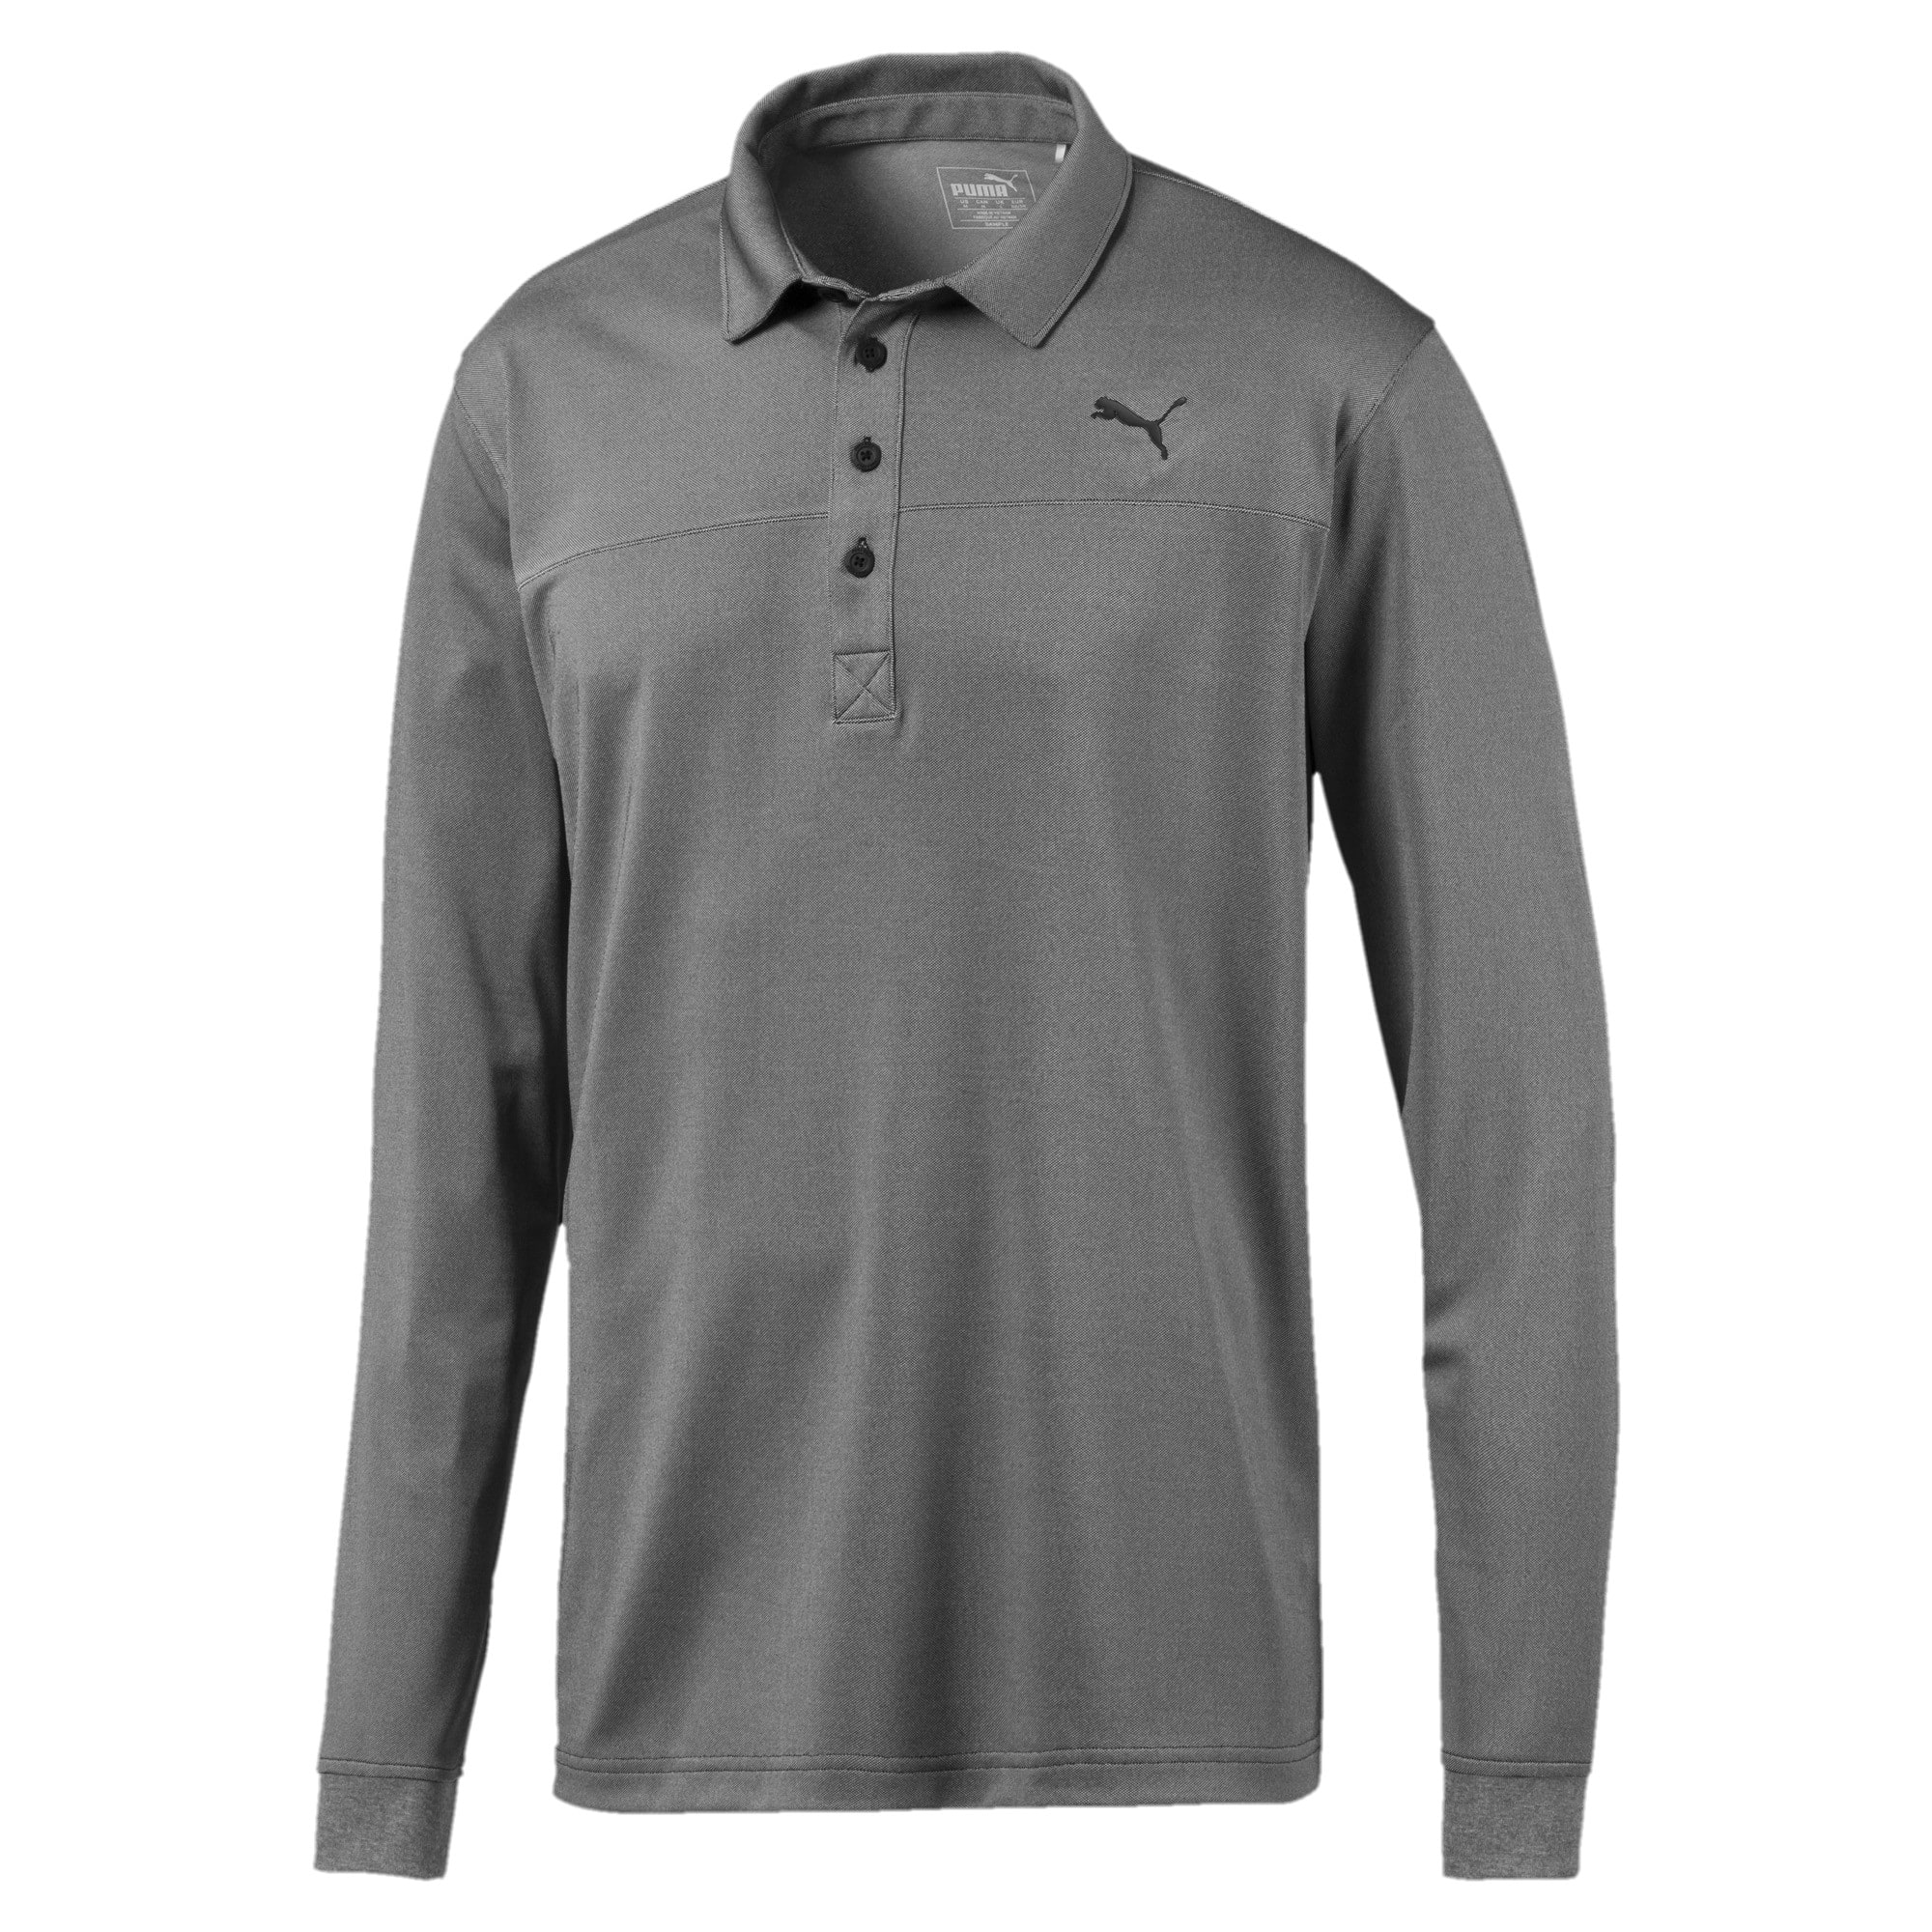 Thumbnail 5 of Long Sleeve Men's Golf Polo, Puma Black Heather, medium